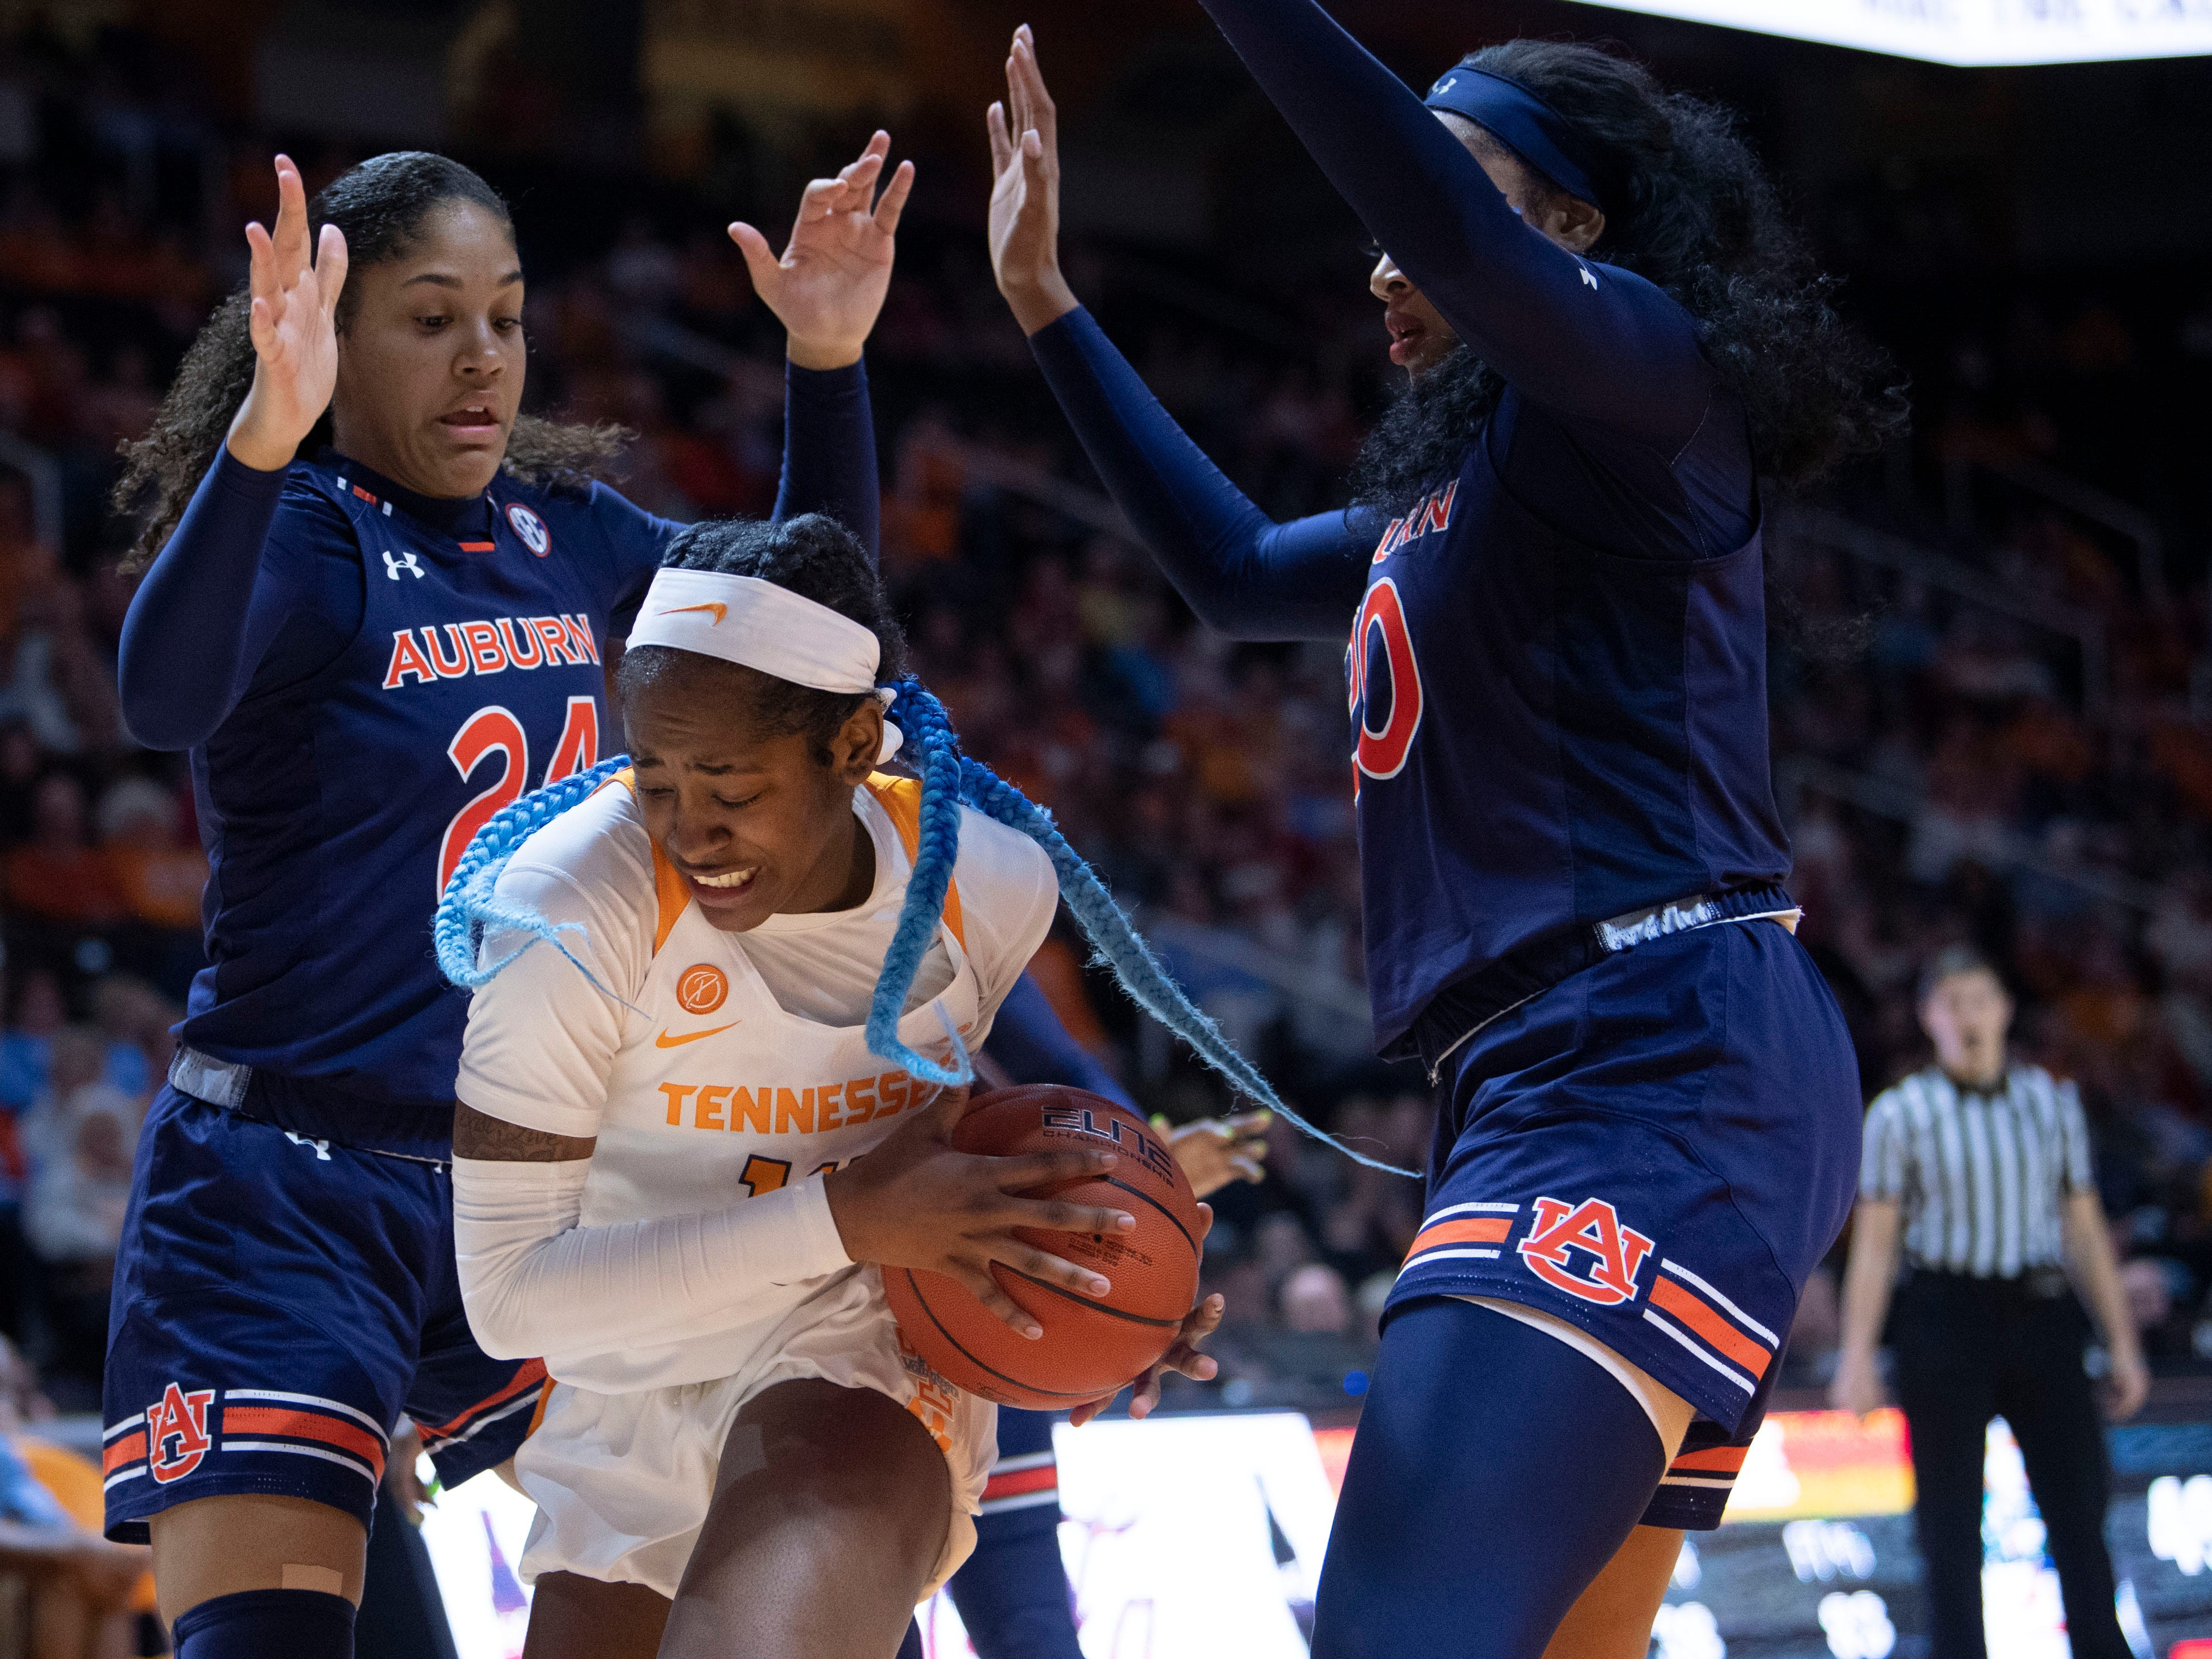 Tennessee's Zaay Green (14) protects the ball from Auburn's Erin Howard (24) and Unique Thompson (20) on Thursday, February 14, 2019.